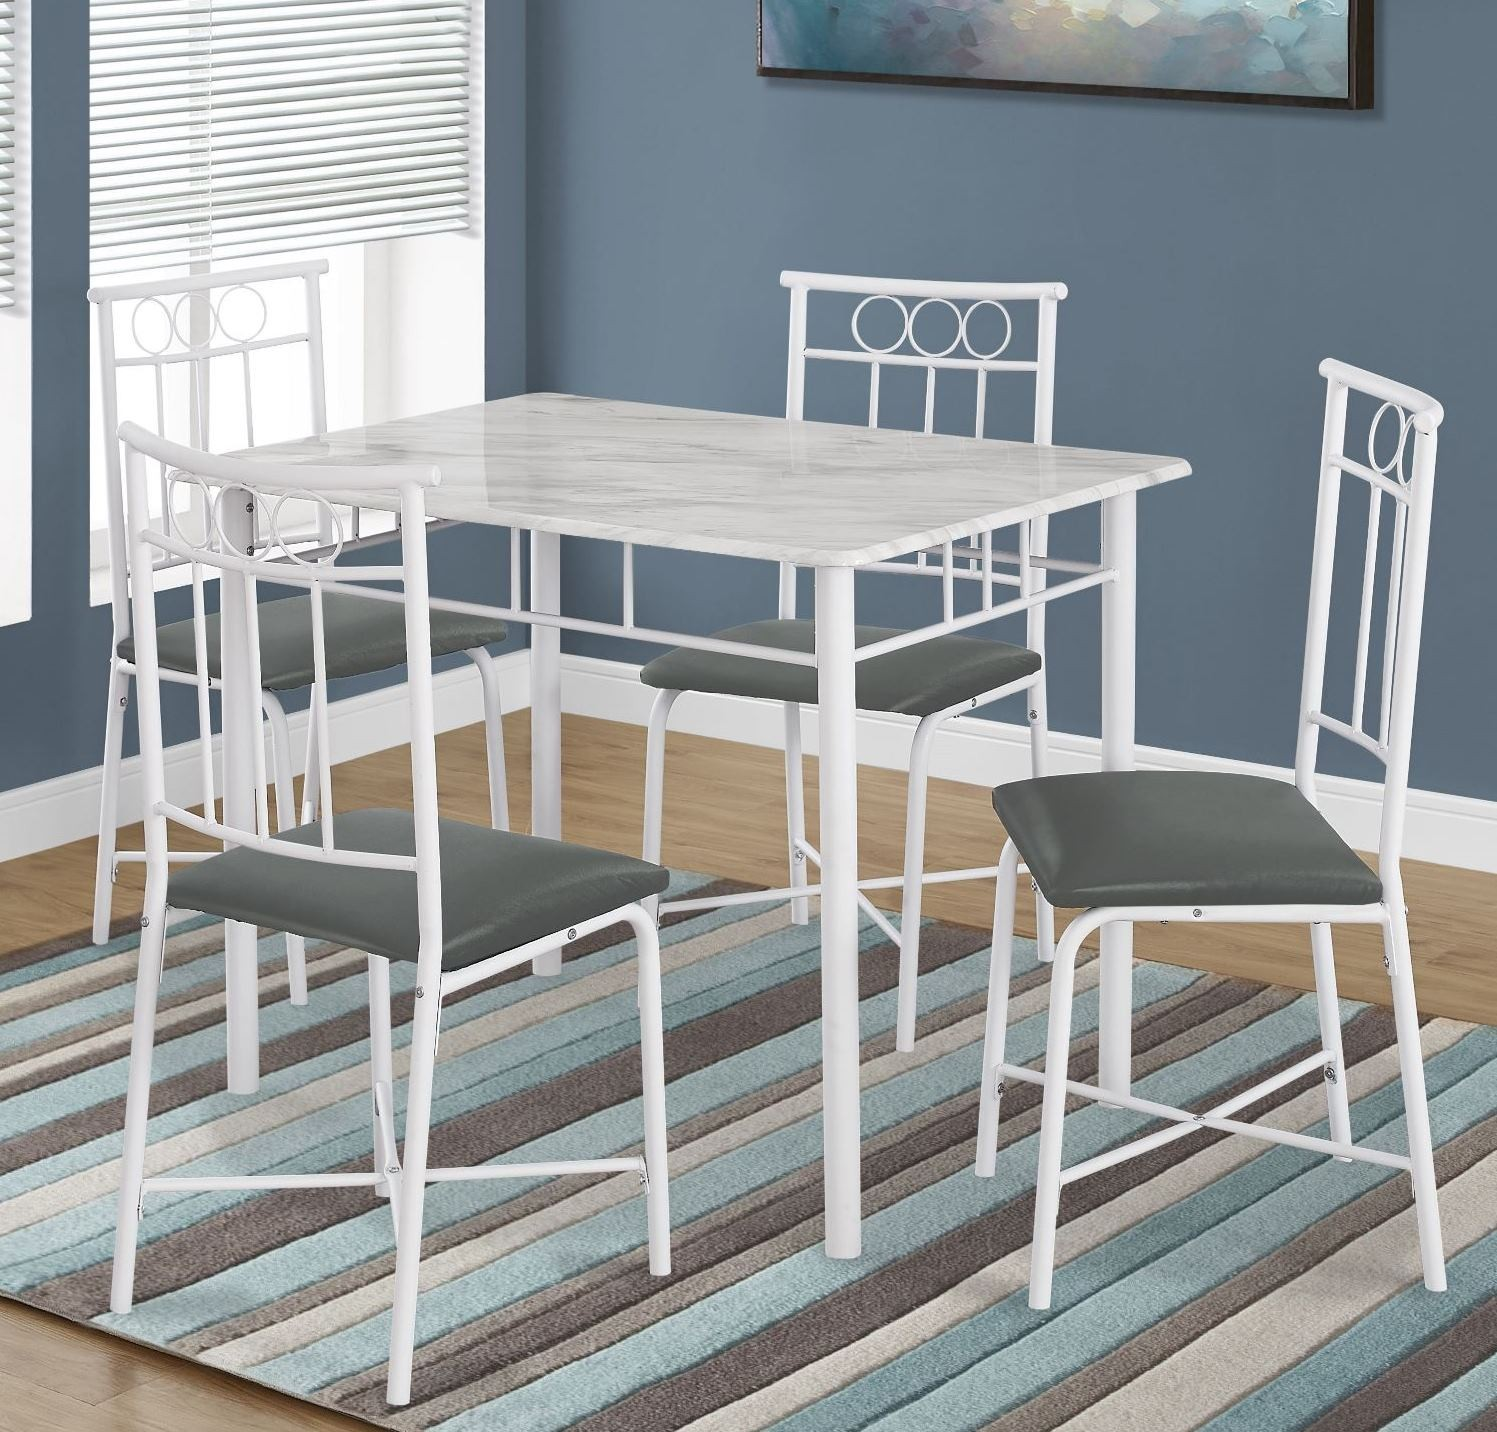 1030 white metal 5 piece dining room set 1030 monarch